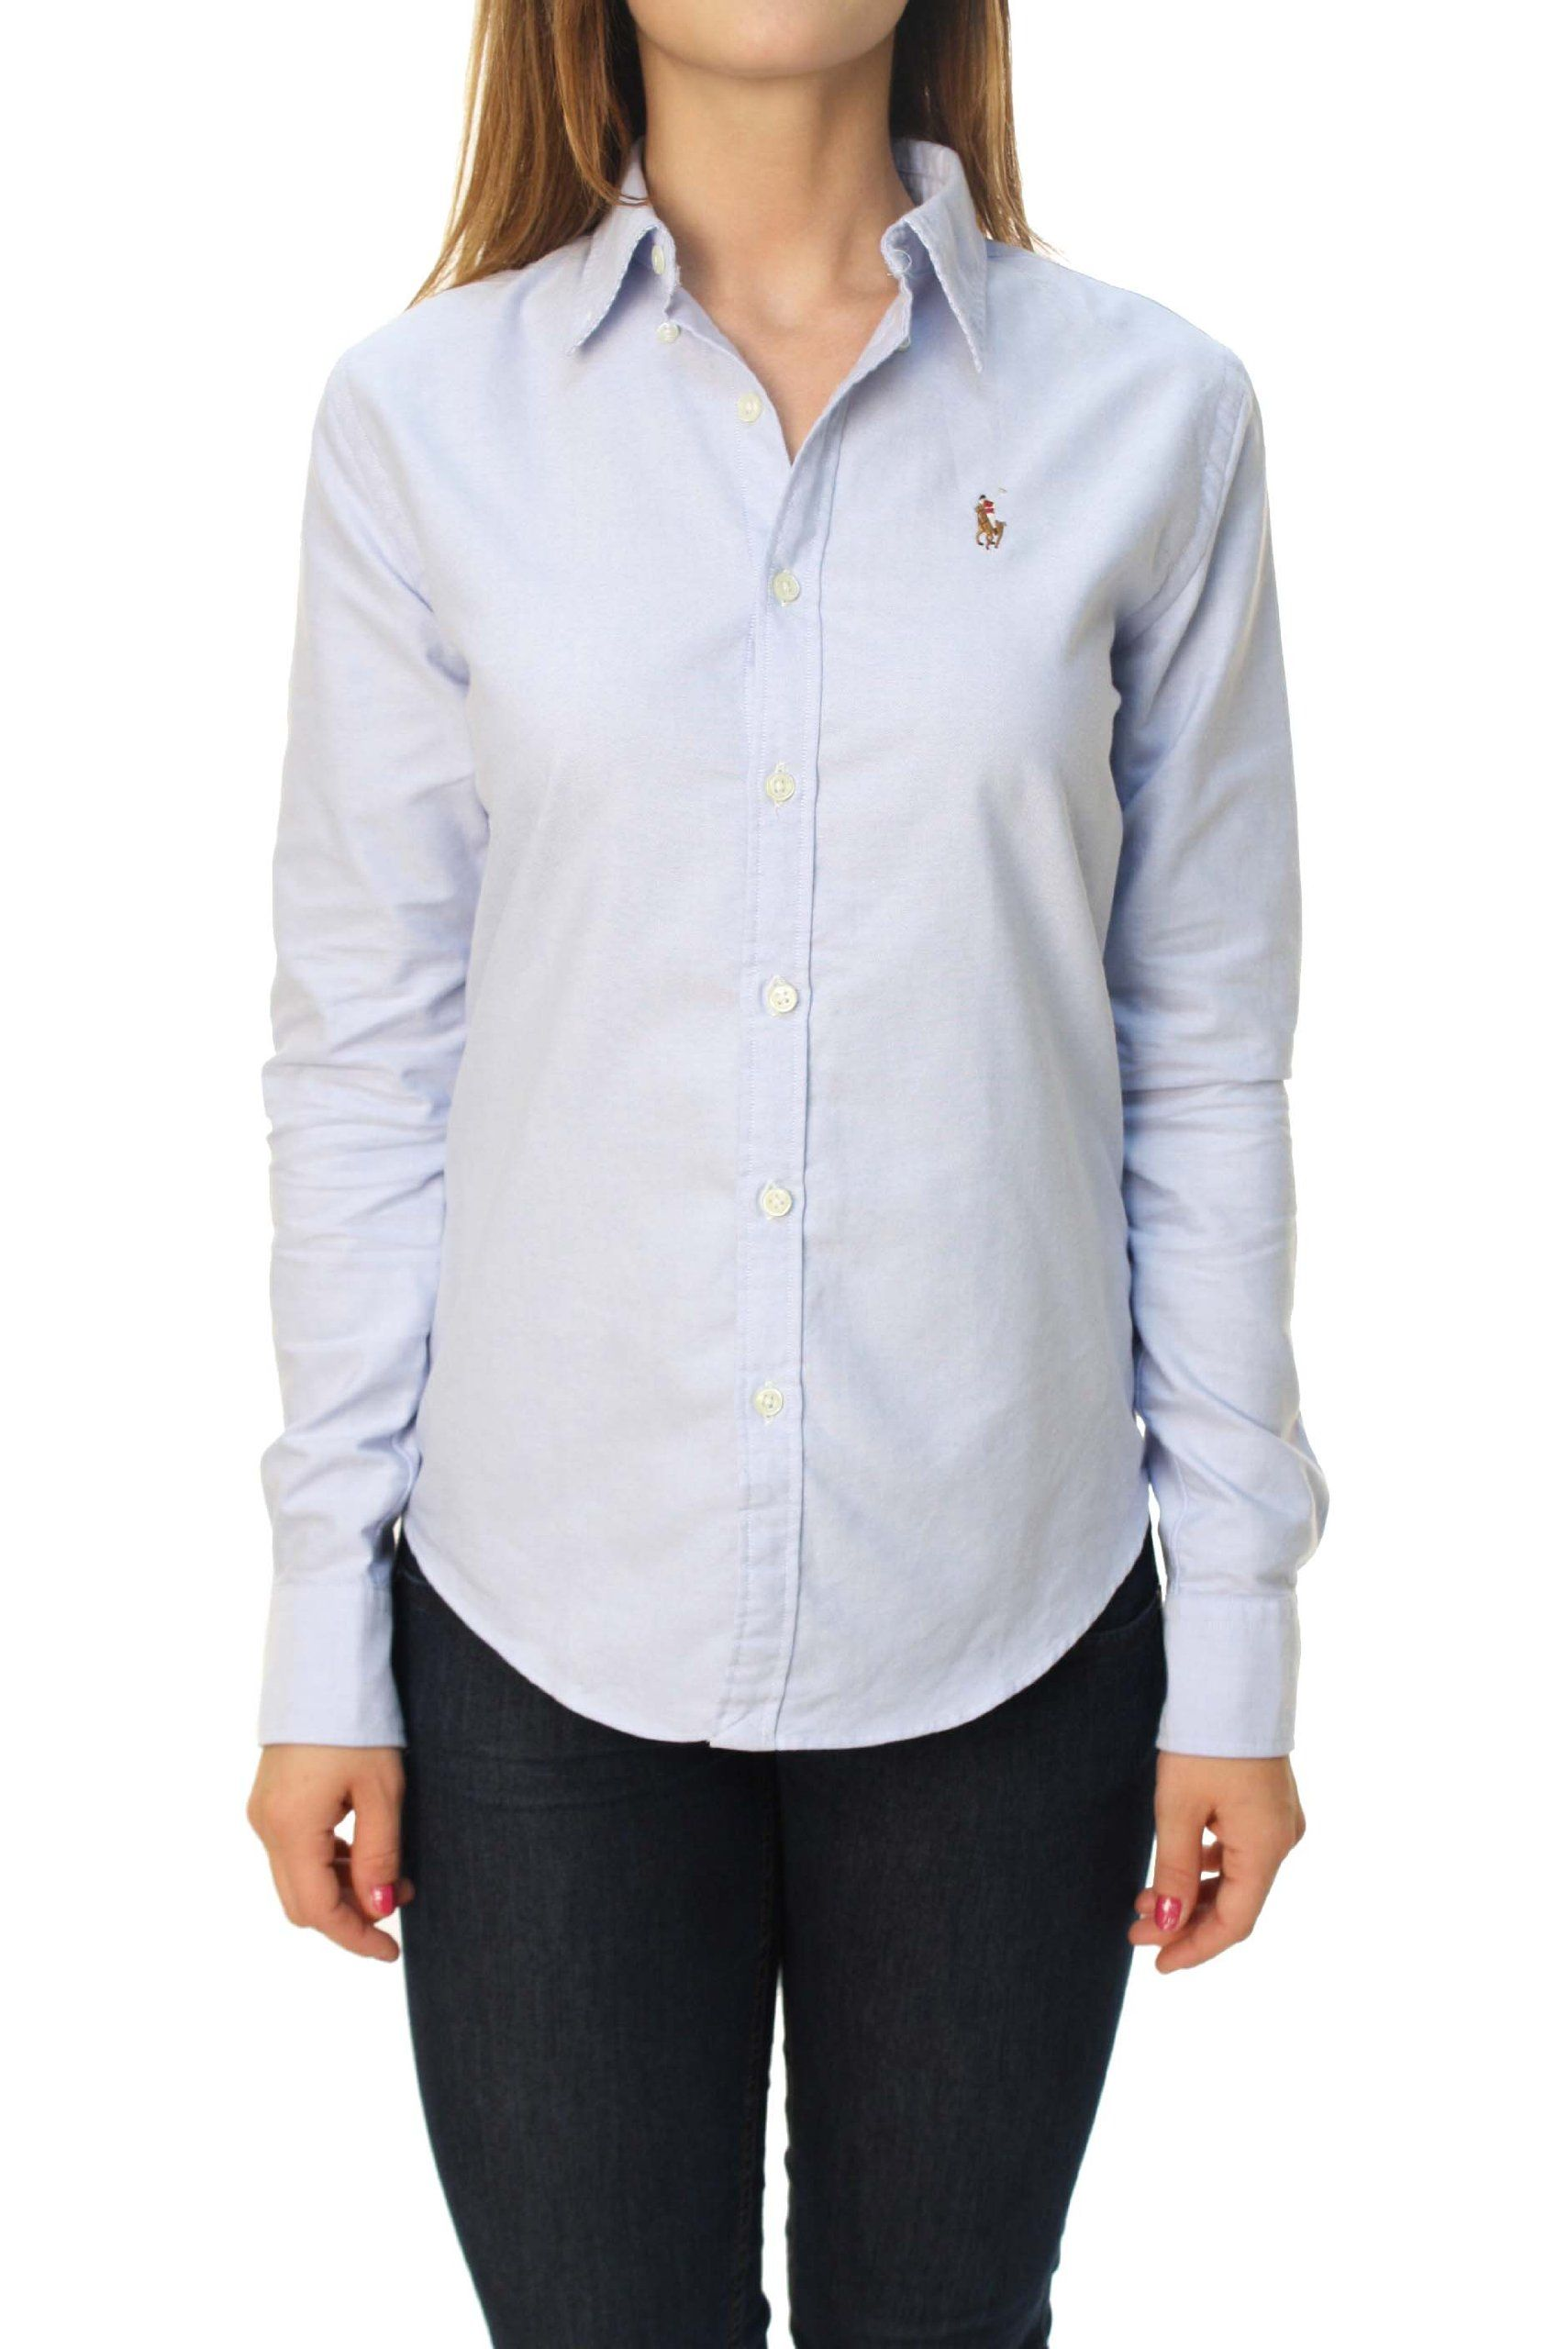 Polo Ralph Lauren Women s Slim Fit Stripe Oxford Button Down Shirt at  Amazon Women s Clothing store  04275e7bfa8